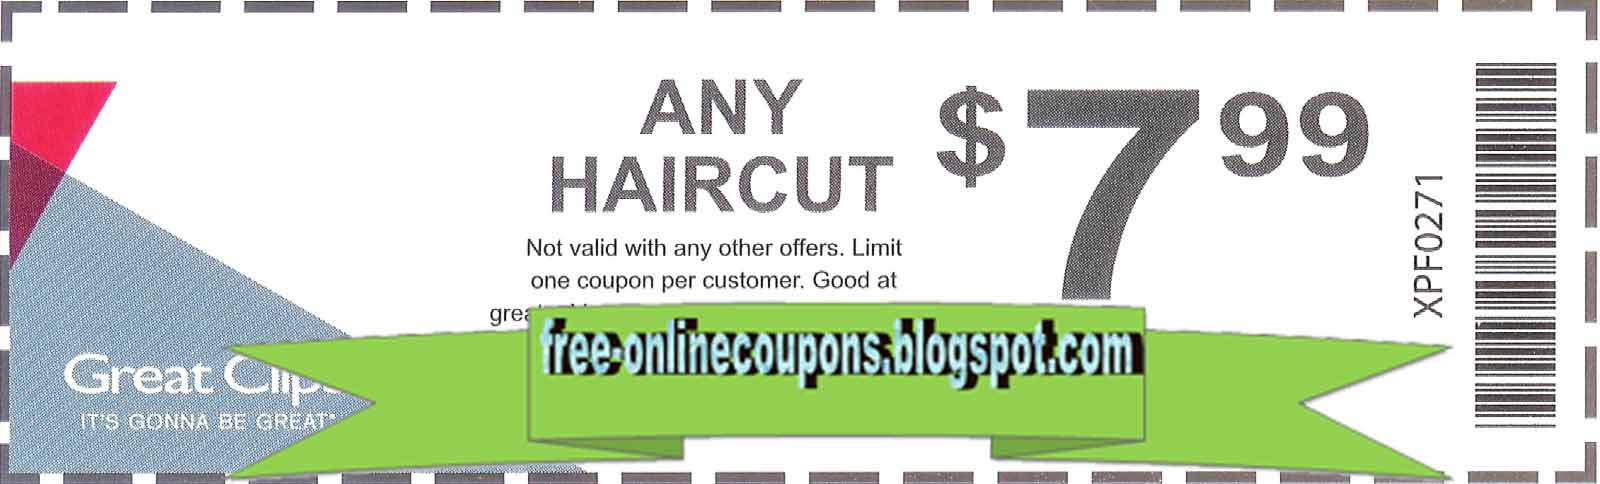 graphic relating to Mastercut Coupons Printable identify Terrific Clips Discount coupons 12222